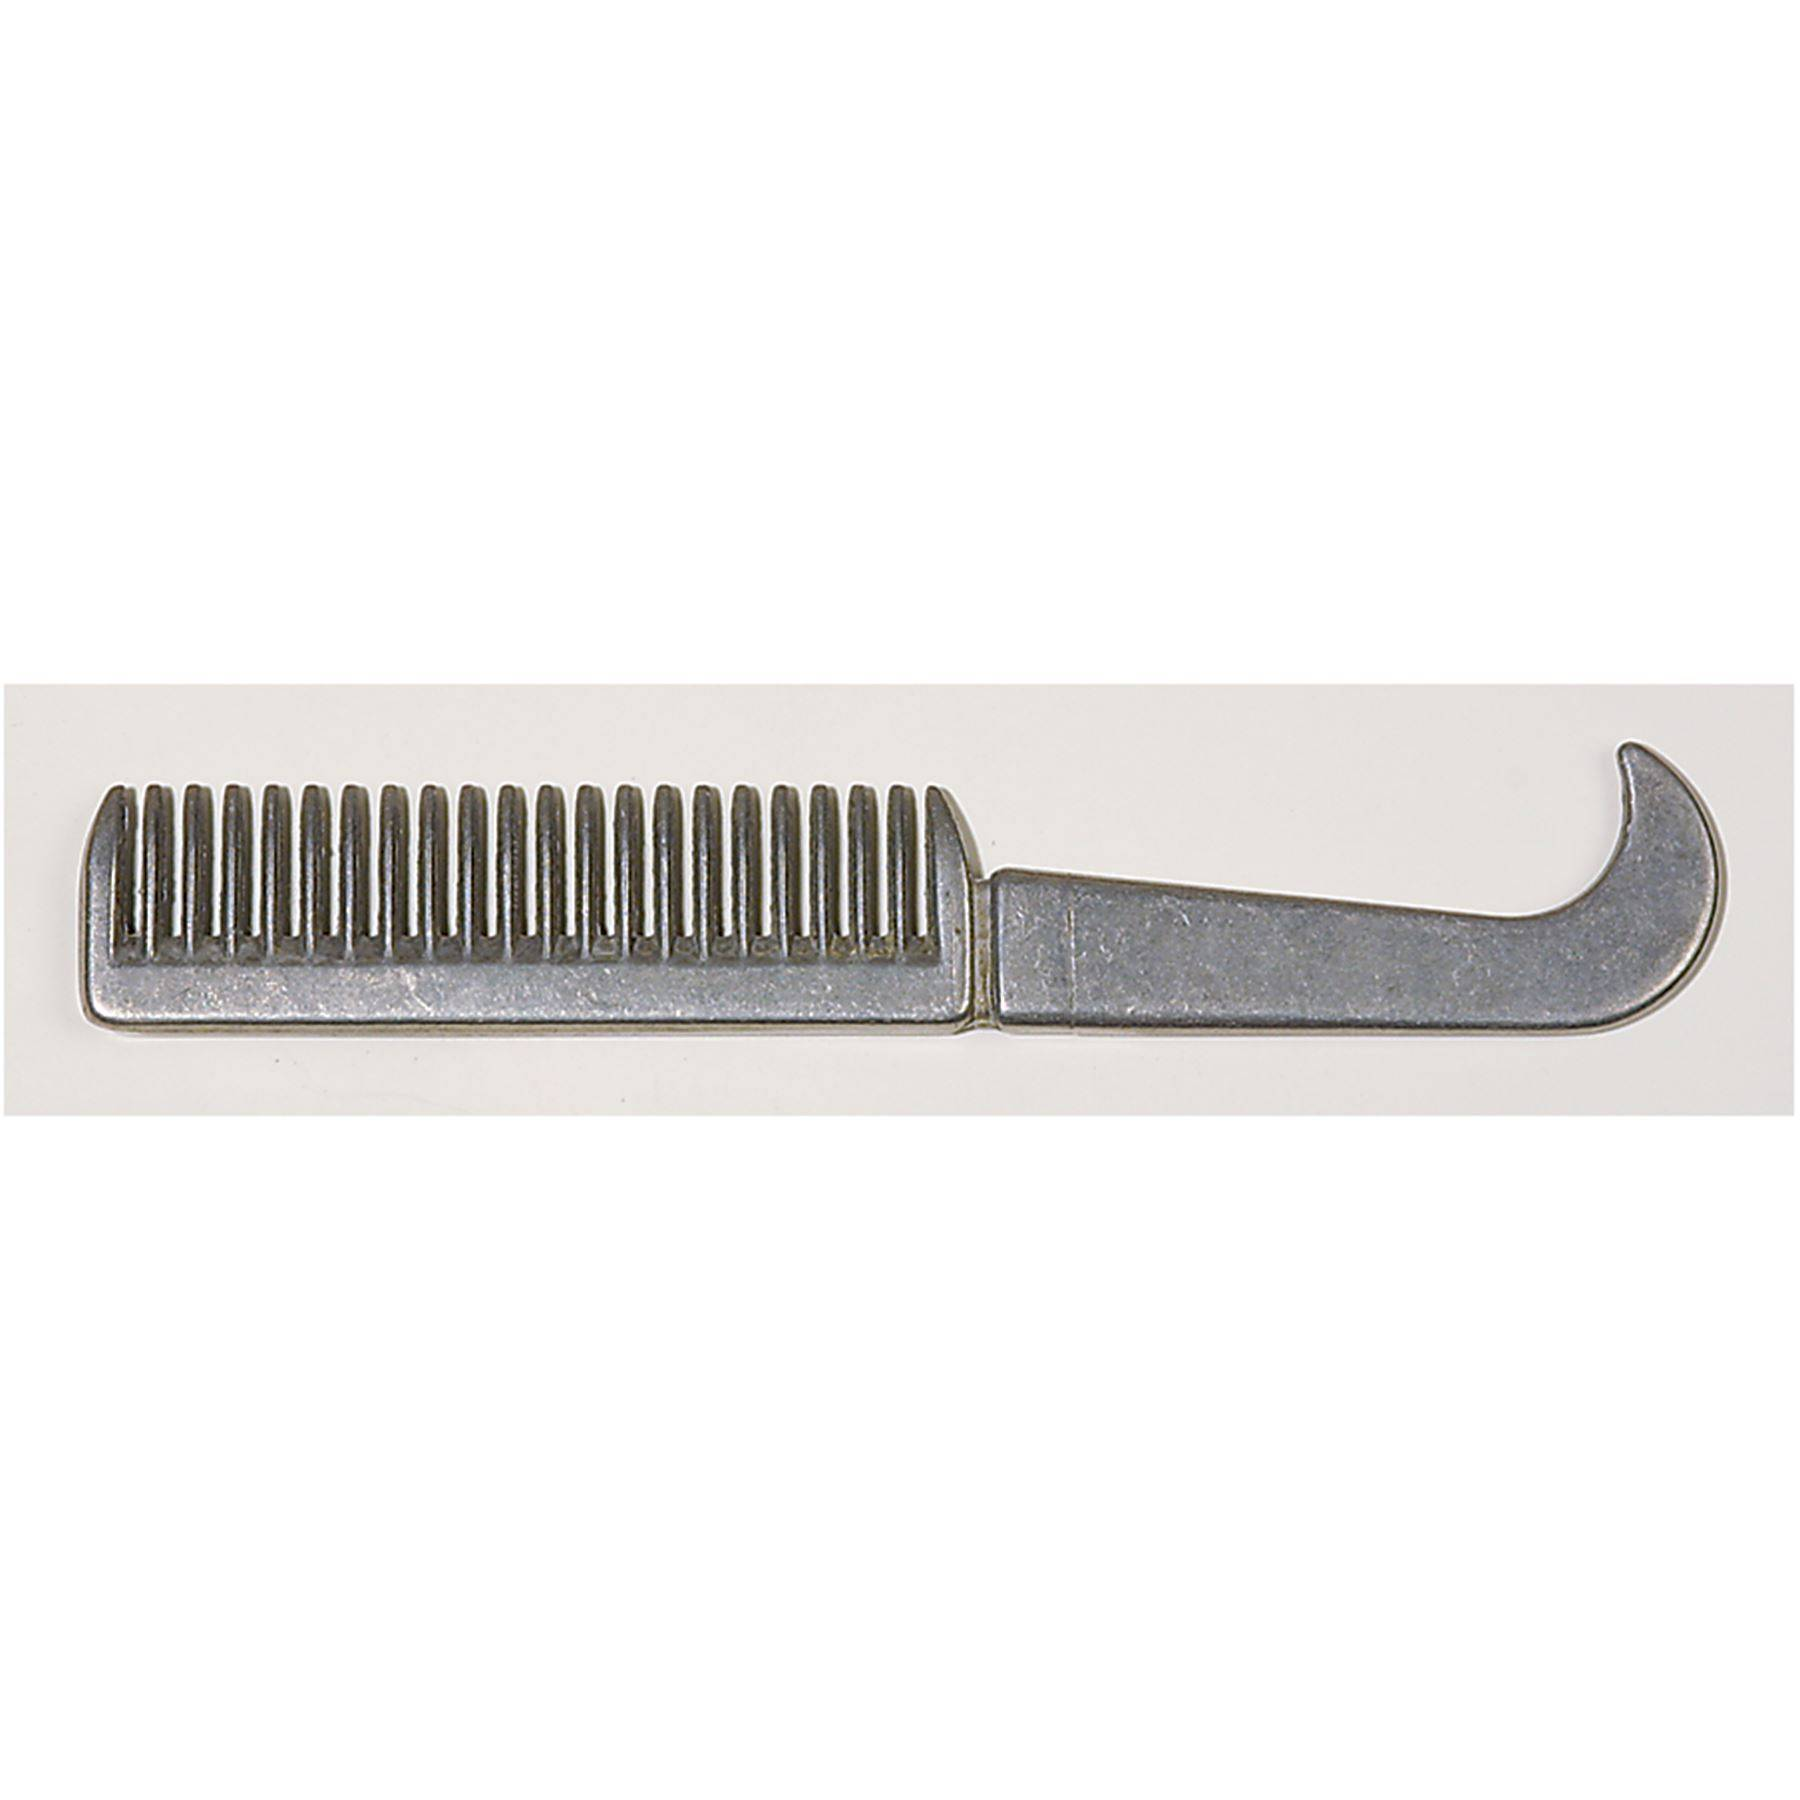 Schneider's Pulling Comb with Hoof Pick Handle